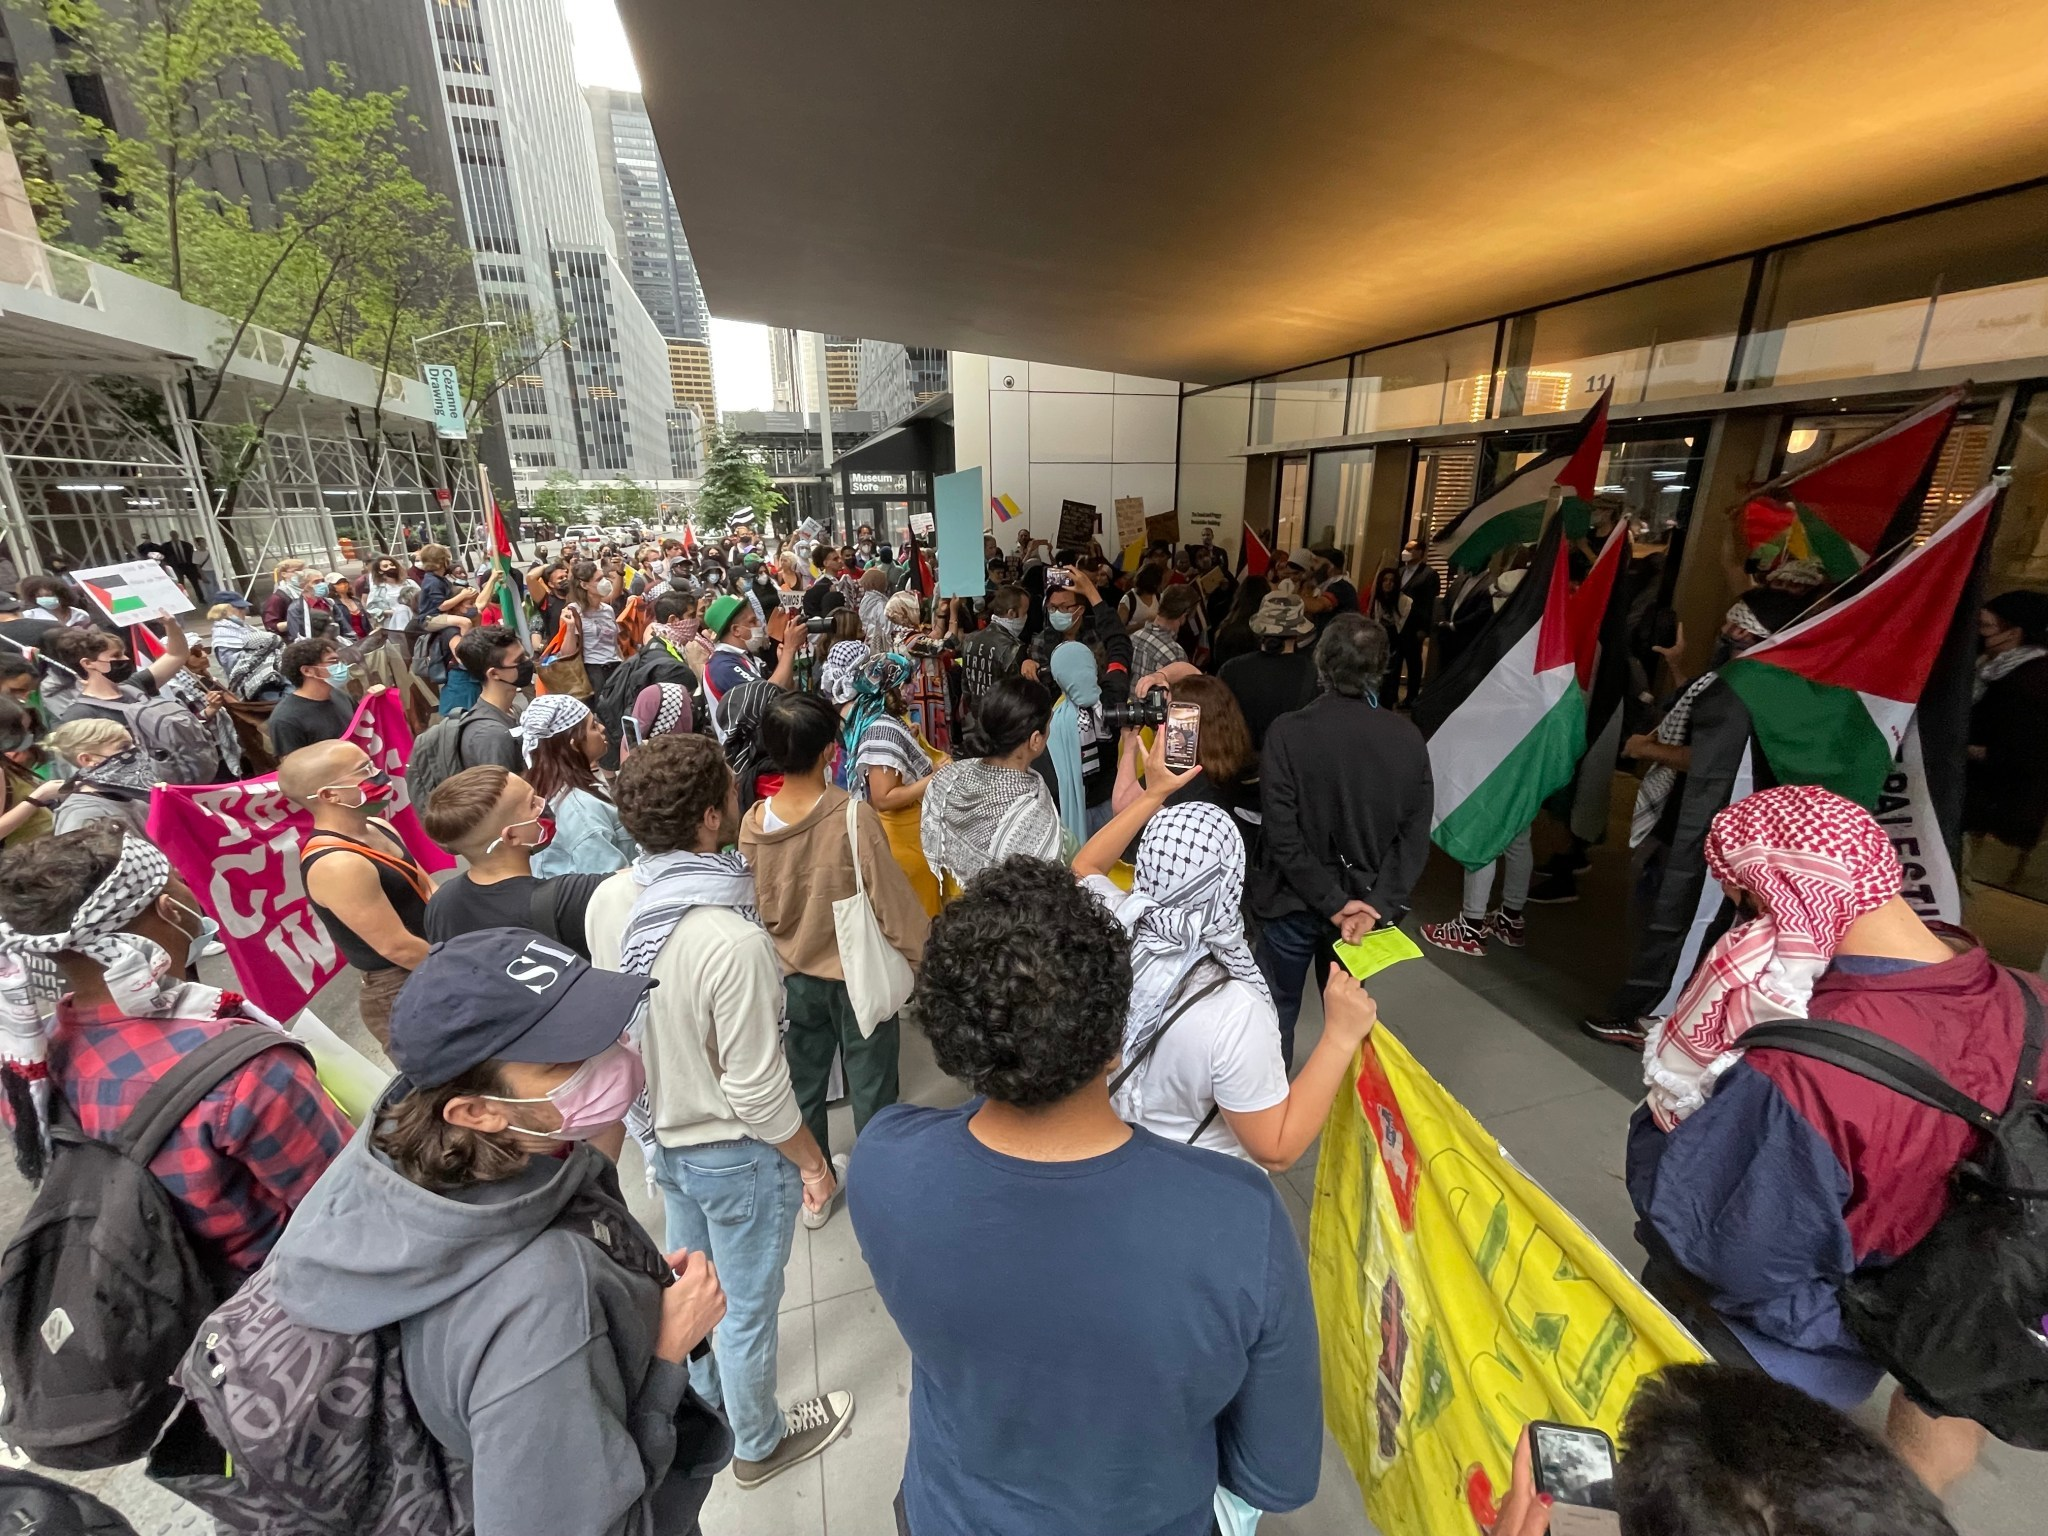 Over 200 protesters held space at MoMA's entrance on Friday, June 11